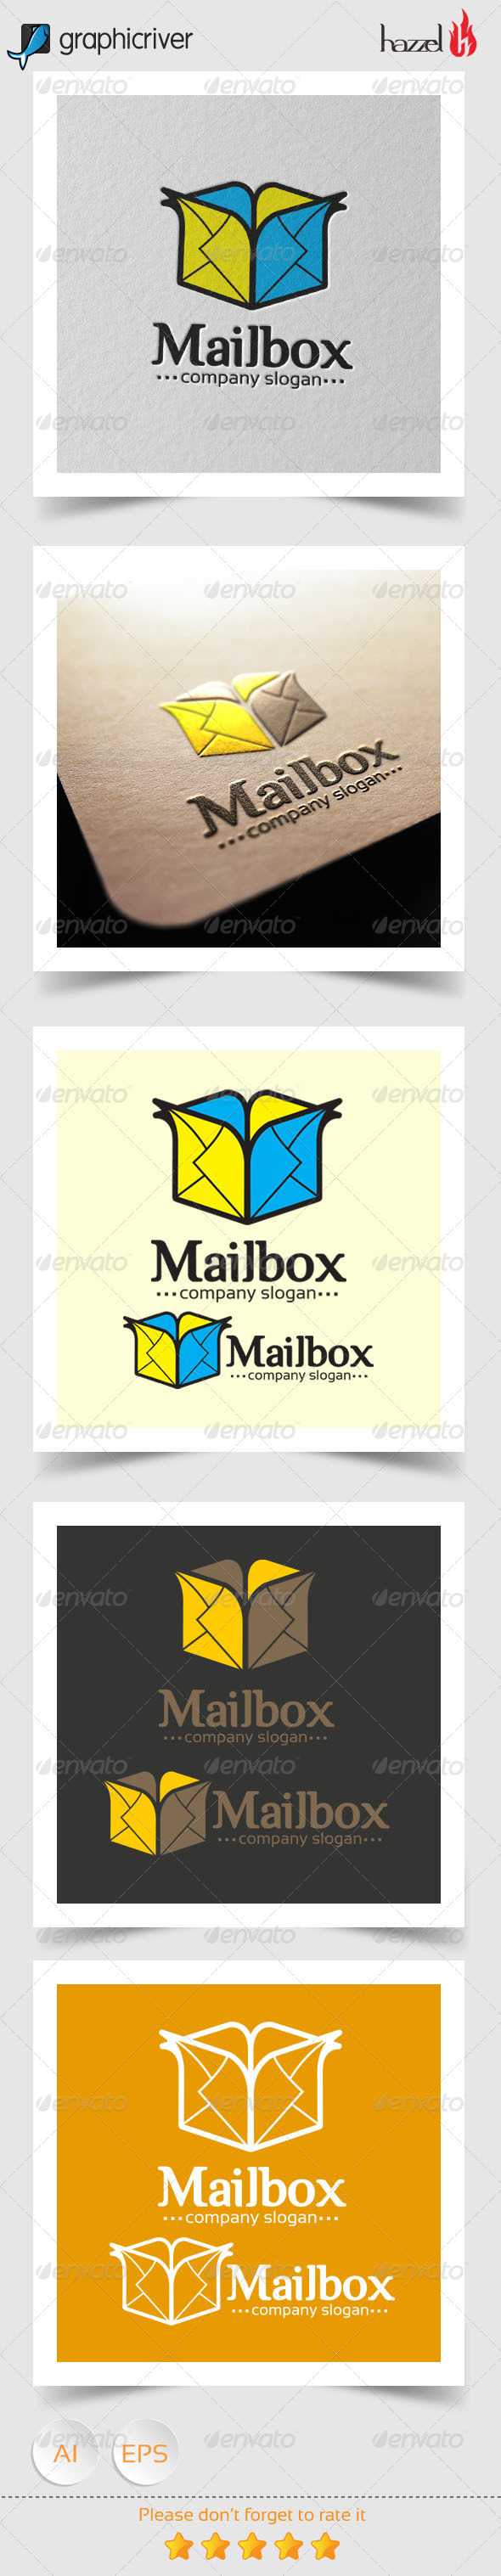 GraphicRiver Mail Box Logo 8207577